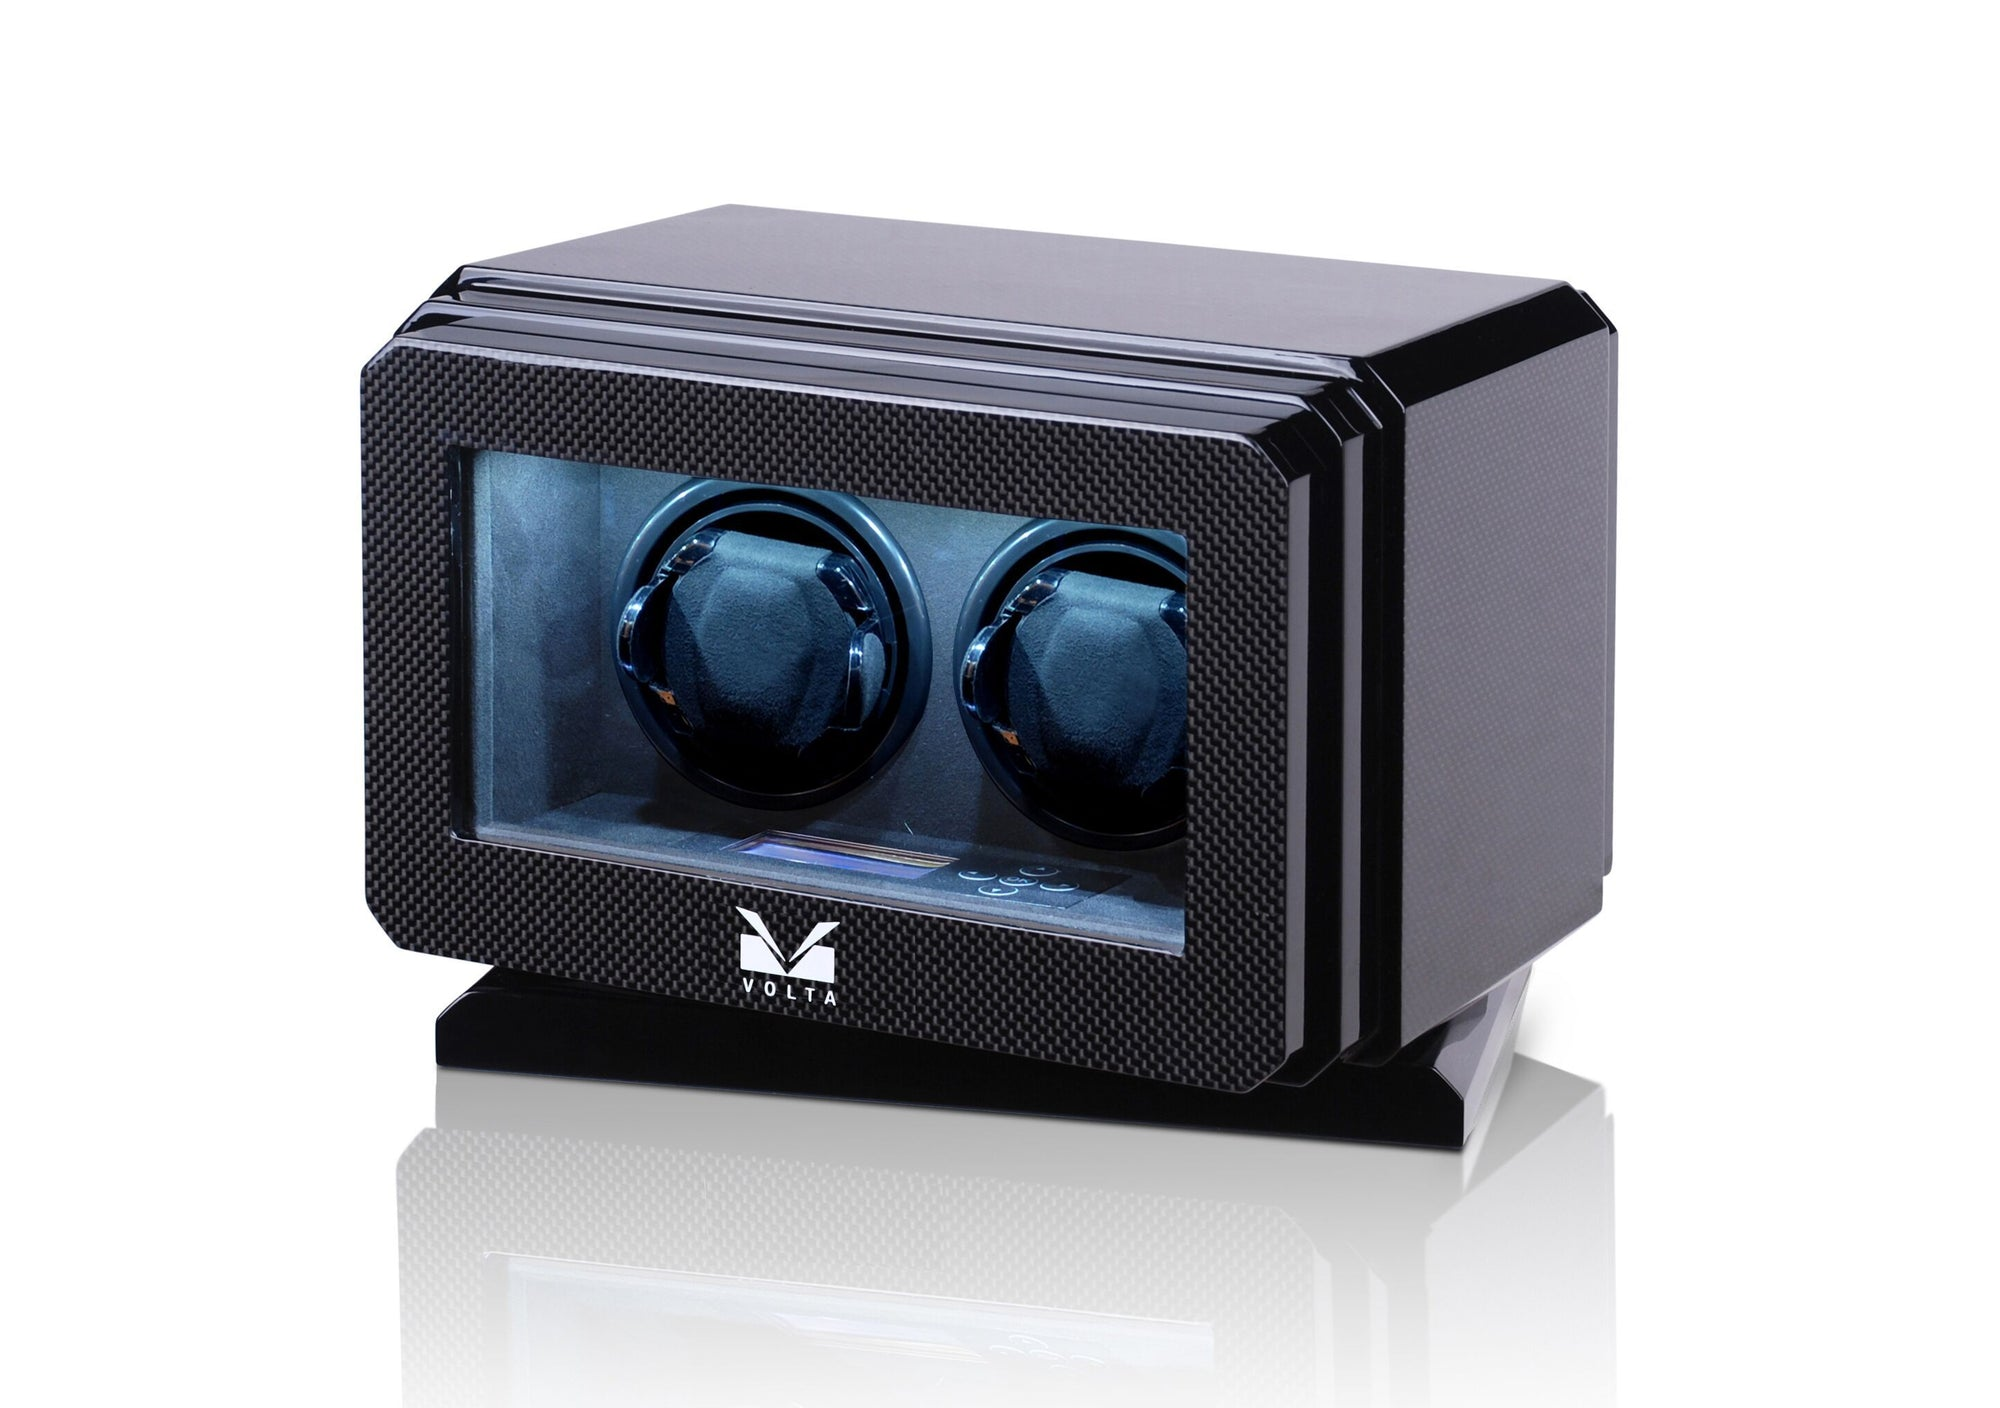 Volta - 31570021 2 Watch Winder With Rotating Base- Carbon Fiber Armadillo Safe and Vault